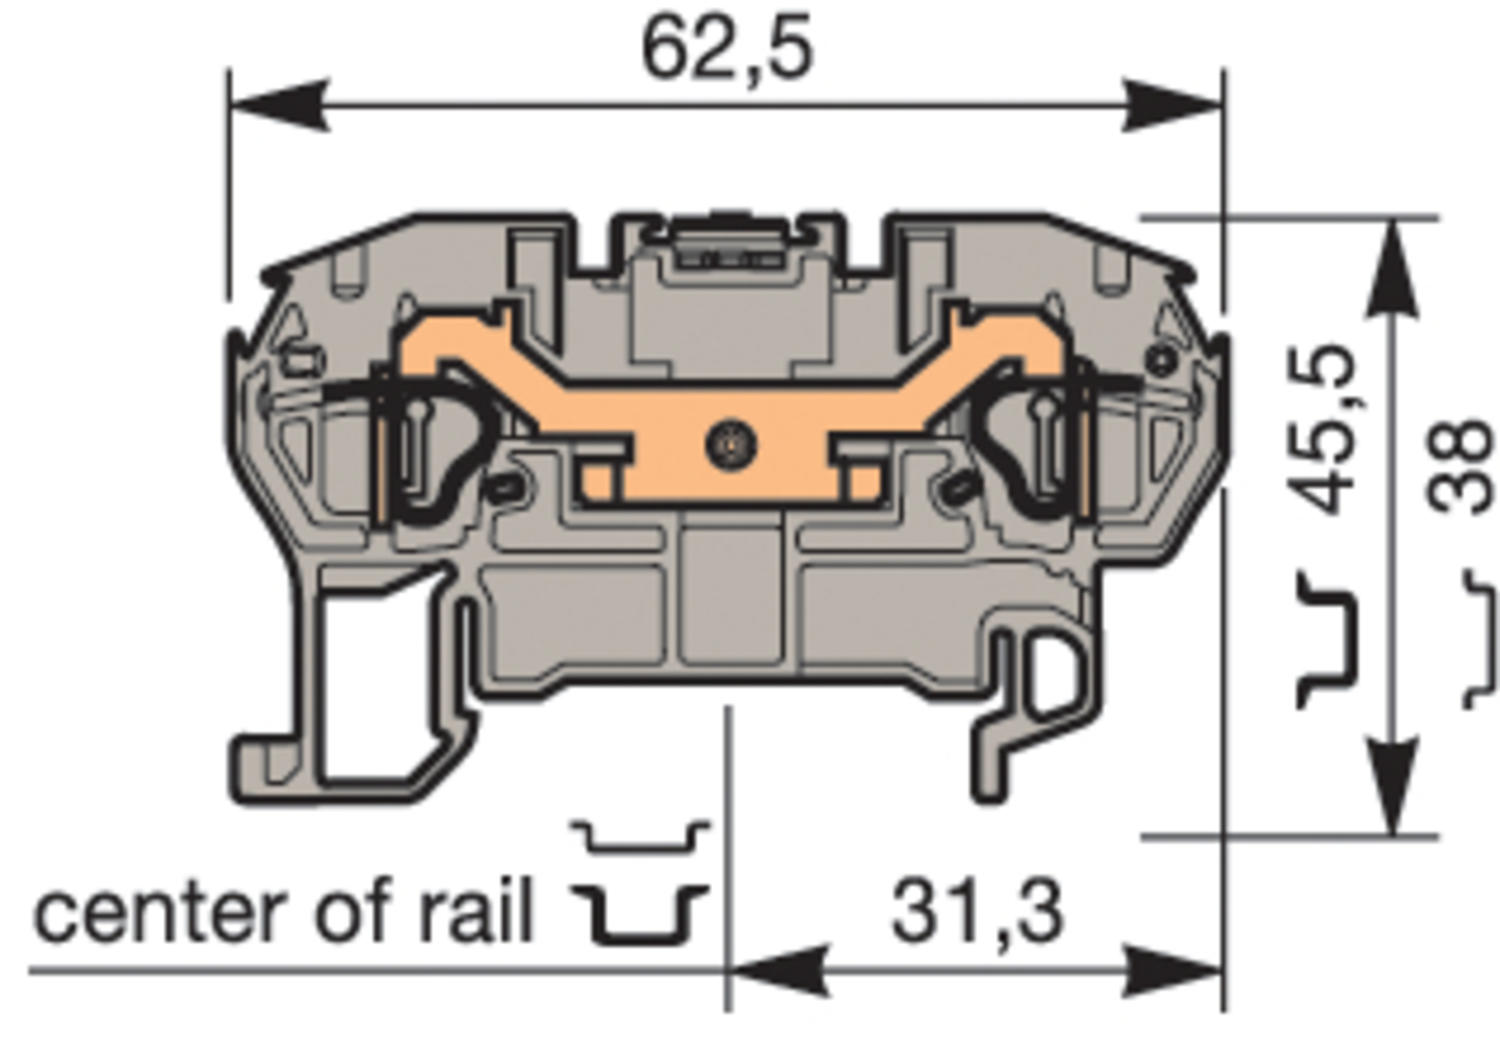 Illustration on terminal block spring clip for TS35-rail, 2 connections